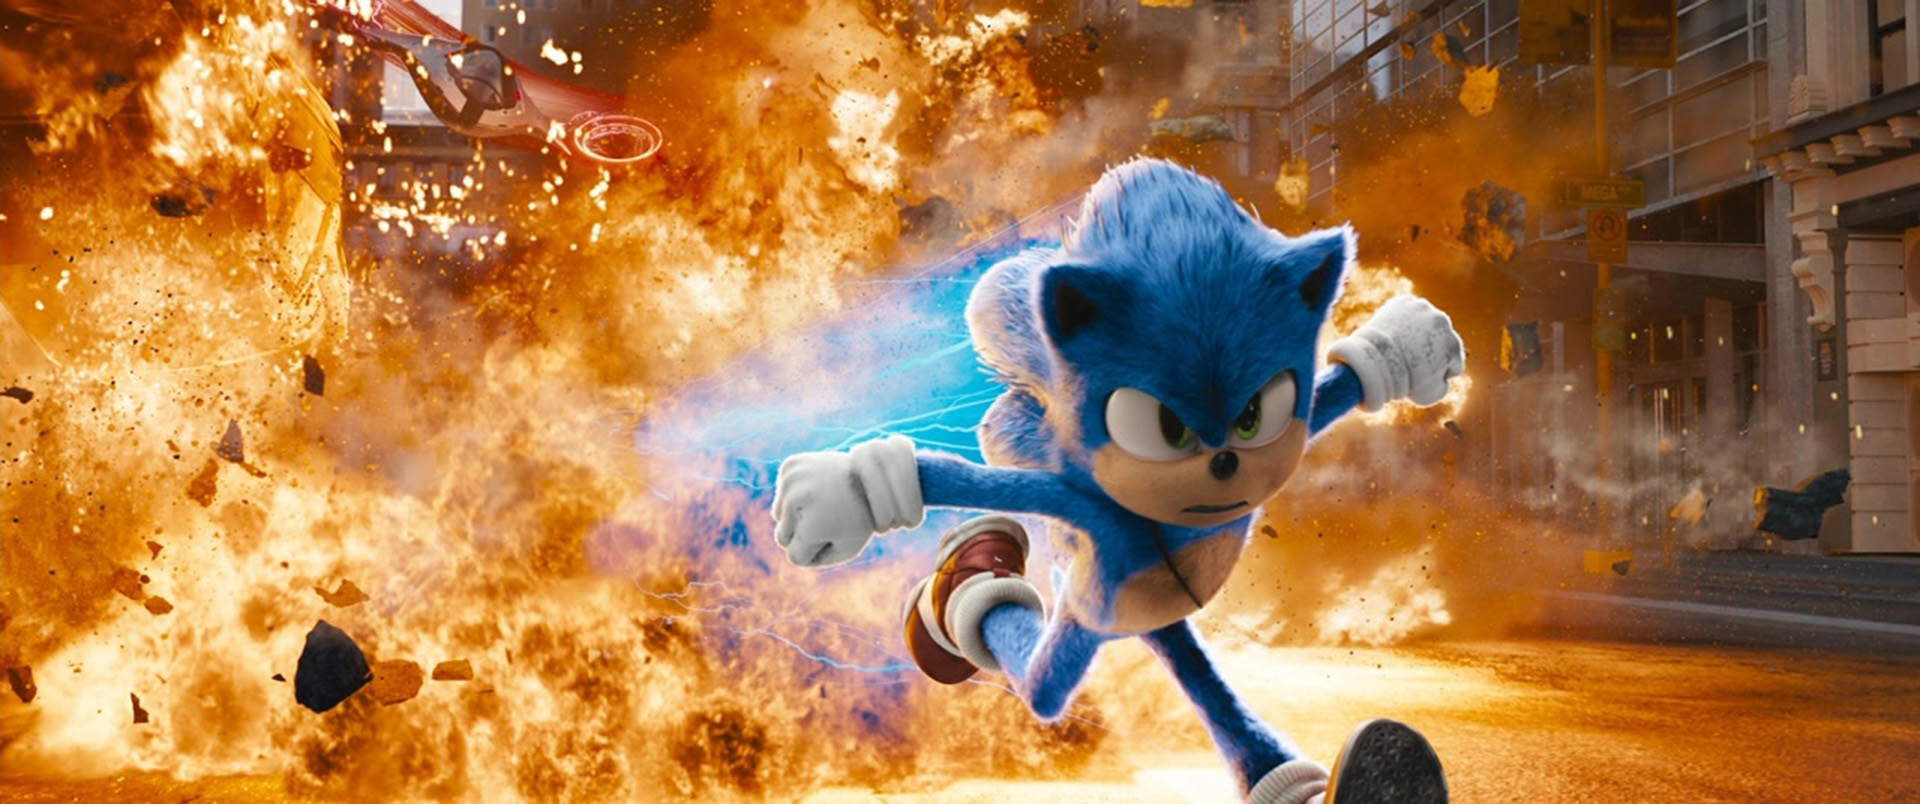 Kirpi Sonic | Sonic the Hedgehog | 2020 | BDRip | XviD | Türkçe Dublaj | 4K - 1080p - m720p - m1080p | BluRay | Dual | TR-EN | Tek Link